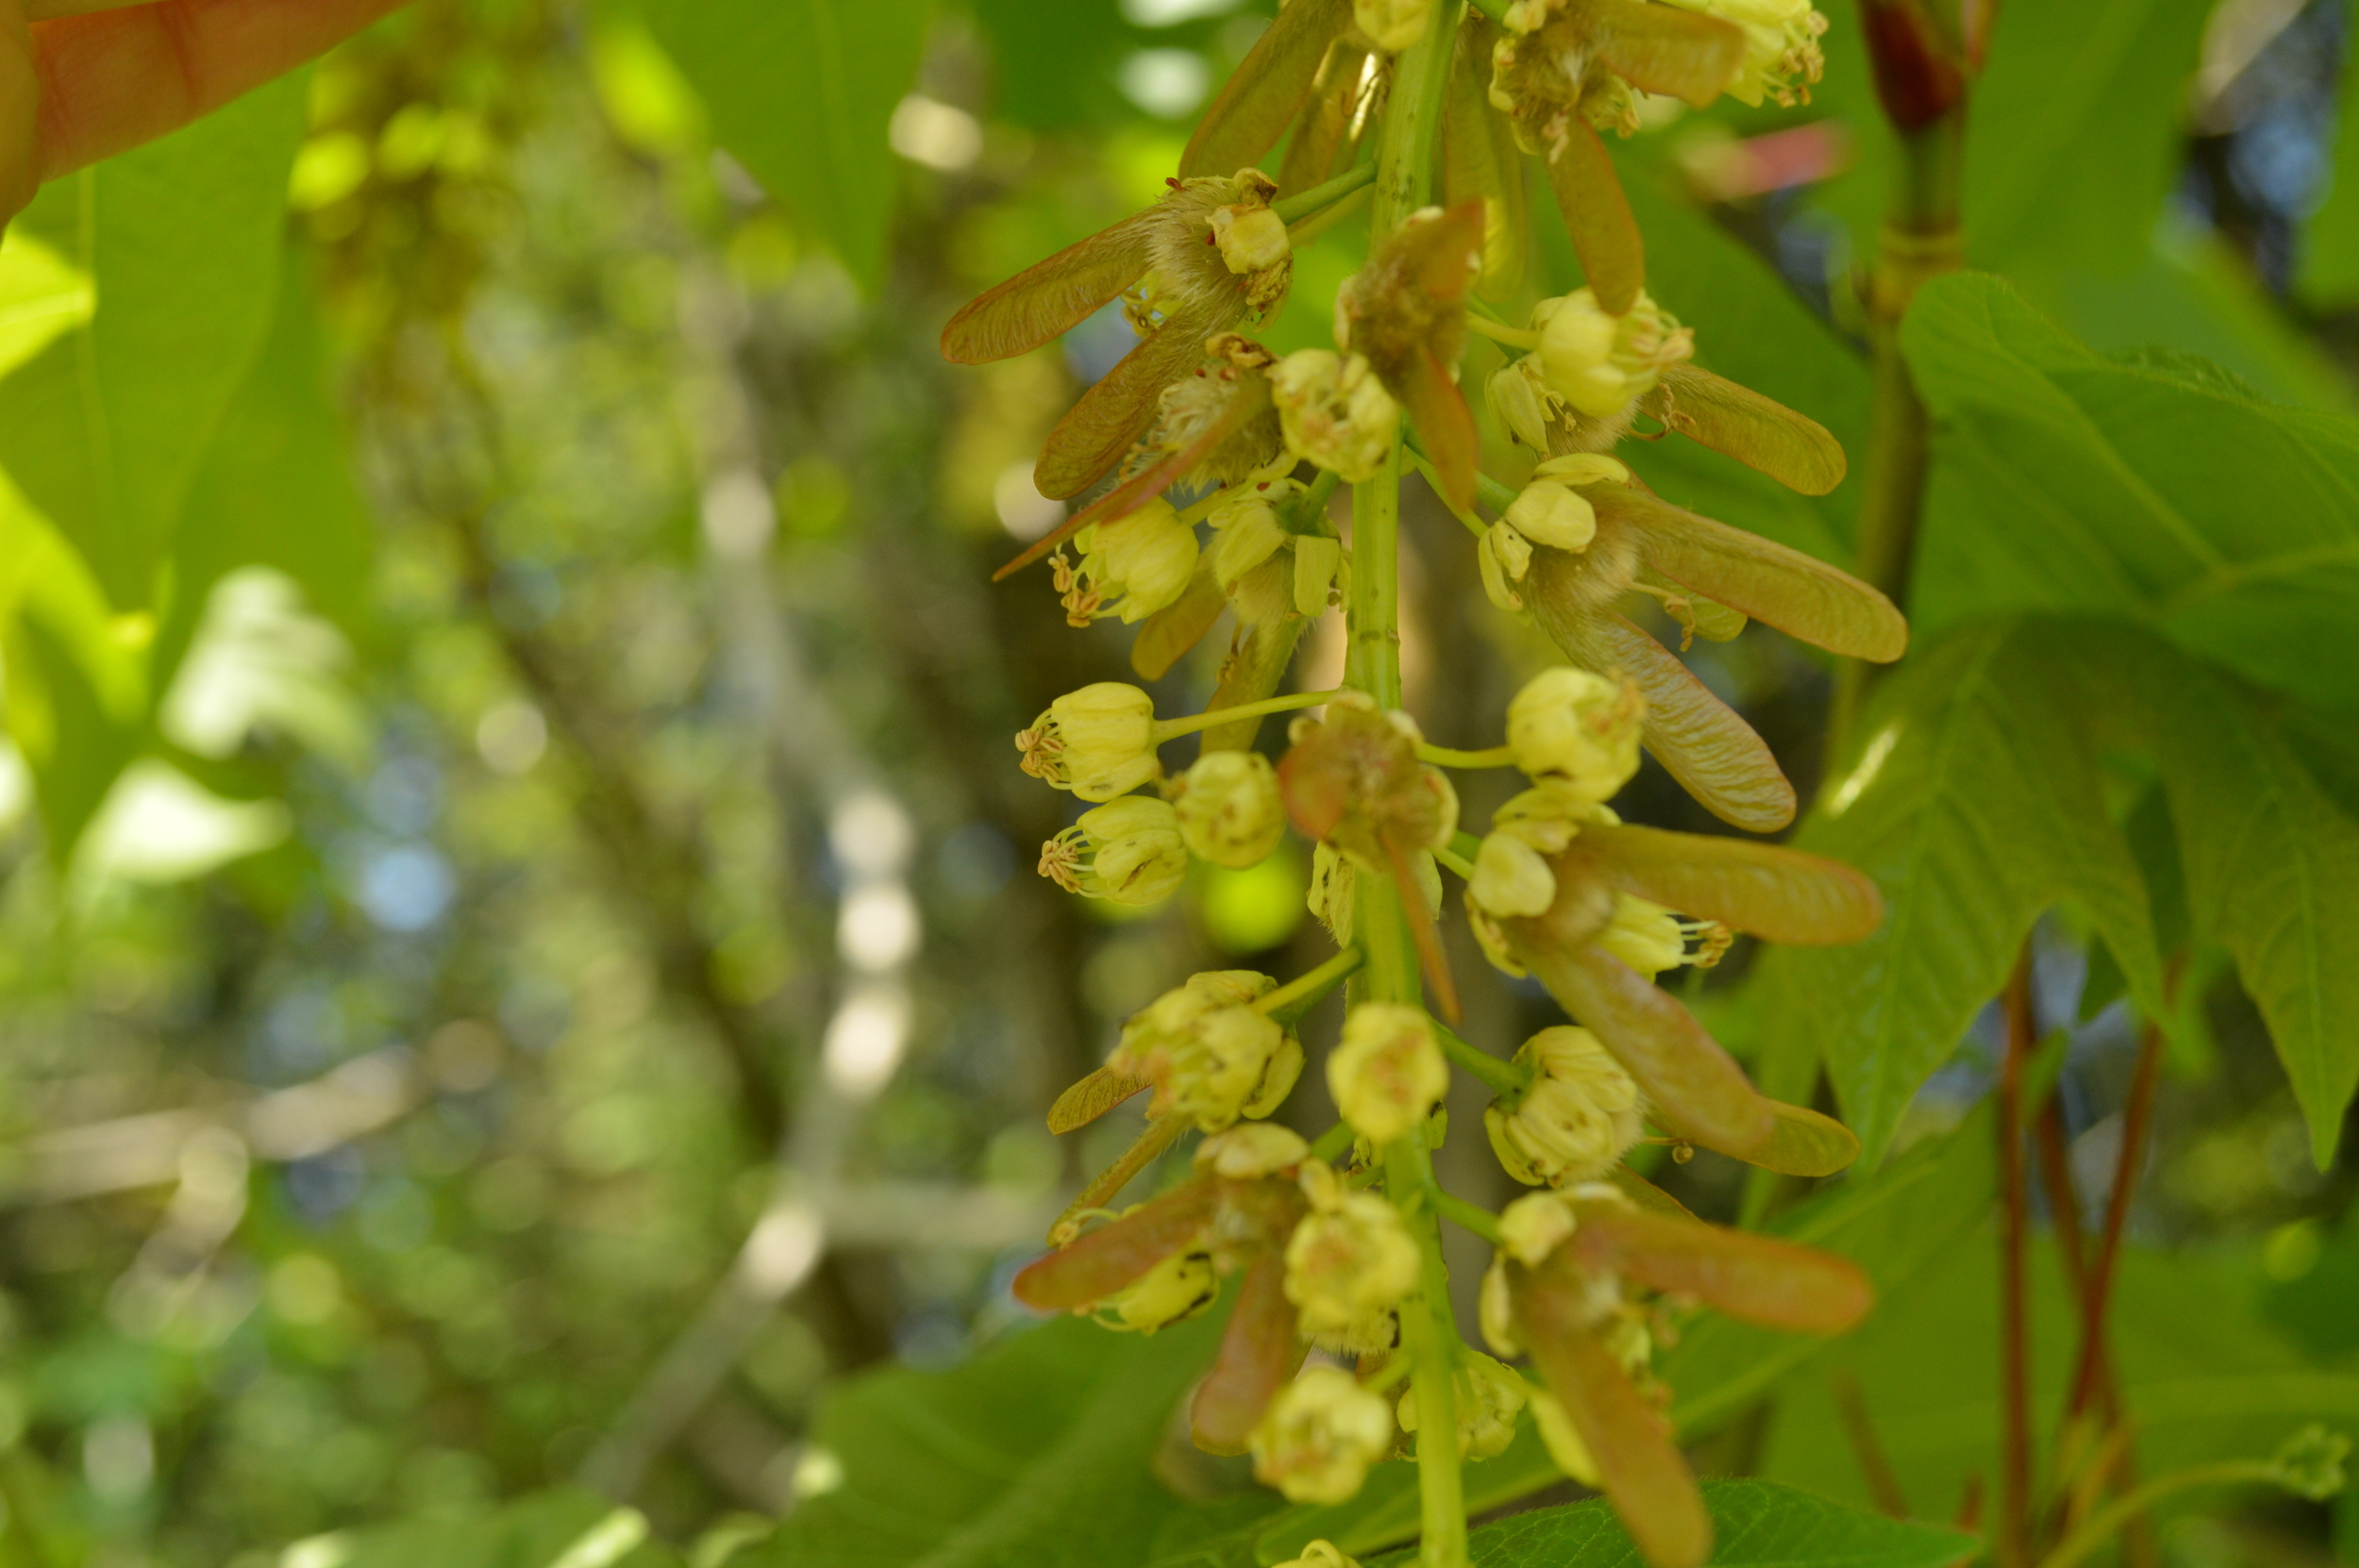 Pollinated maple flowers are becoming winged fruits.